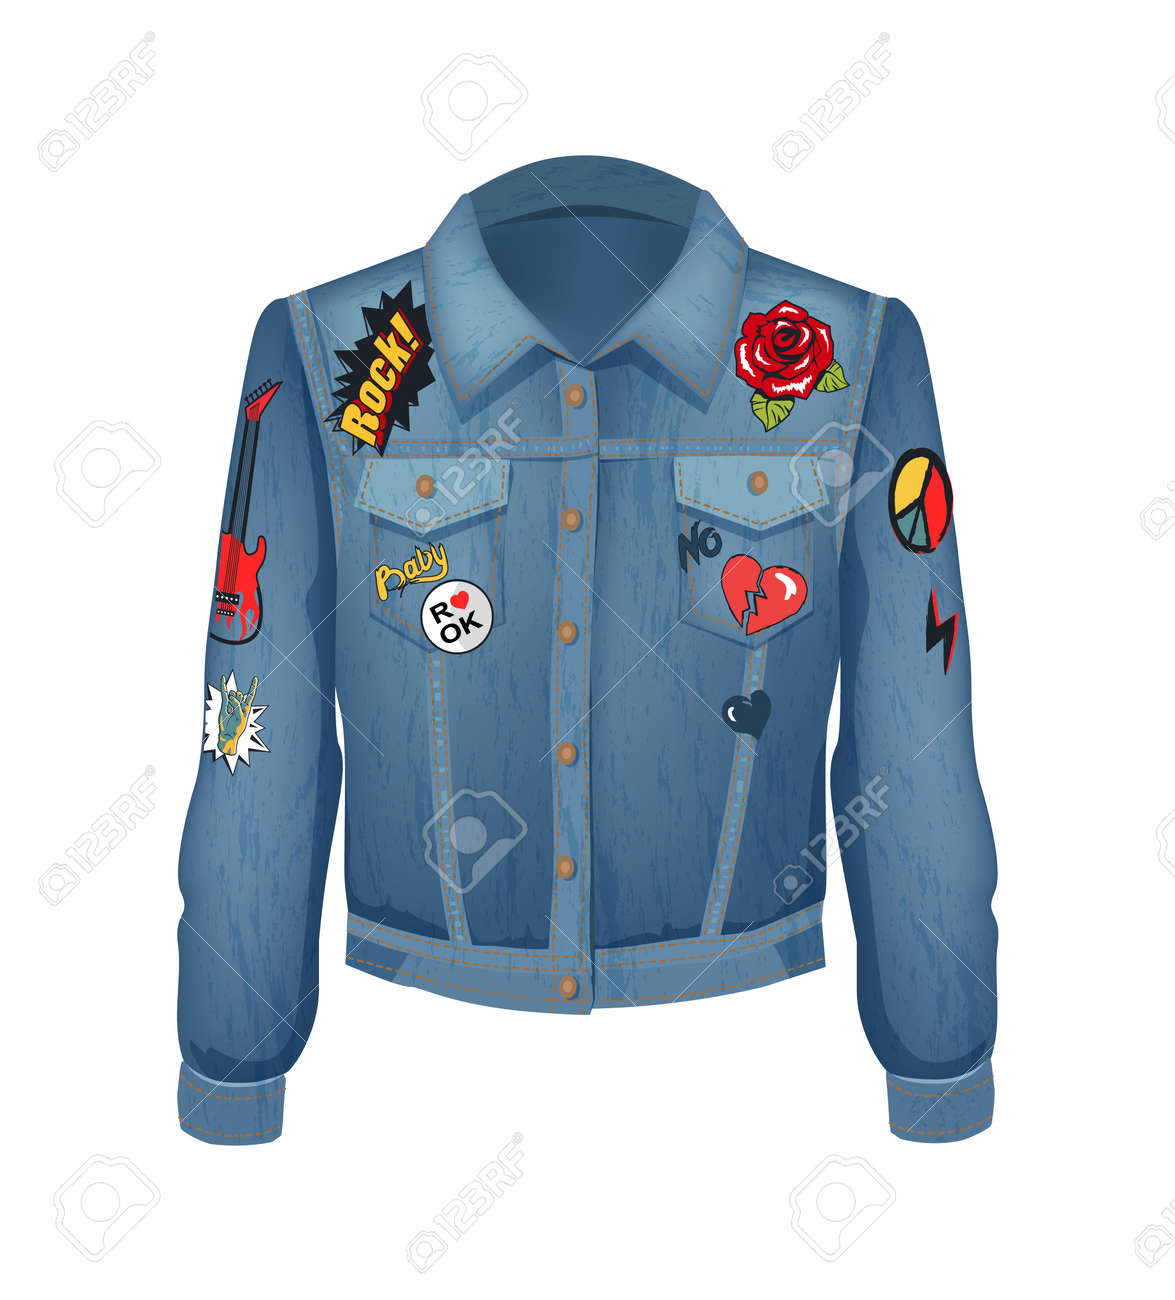 Rock music patches on denim jacket. Jeans shirt with roses in bloom and gestures of rockers. Horned fingers and broken heart, vector illustration - 110800123